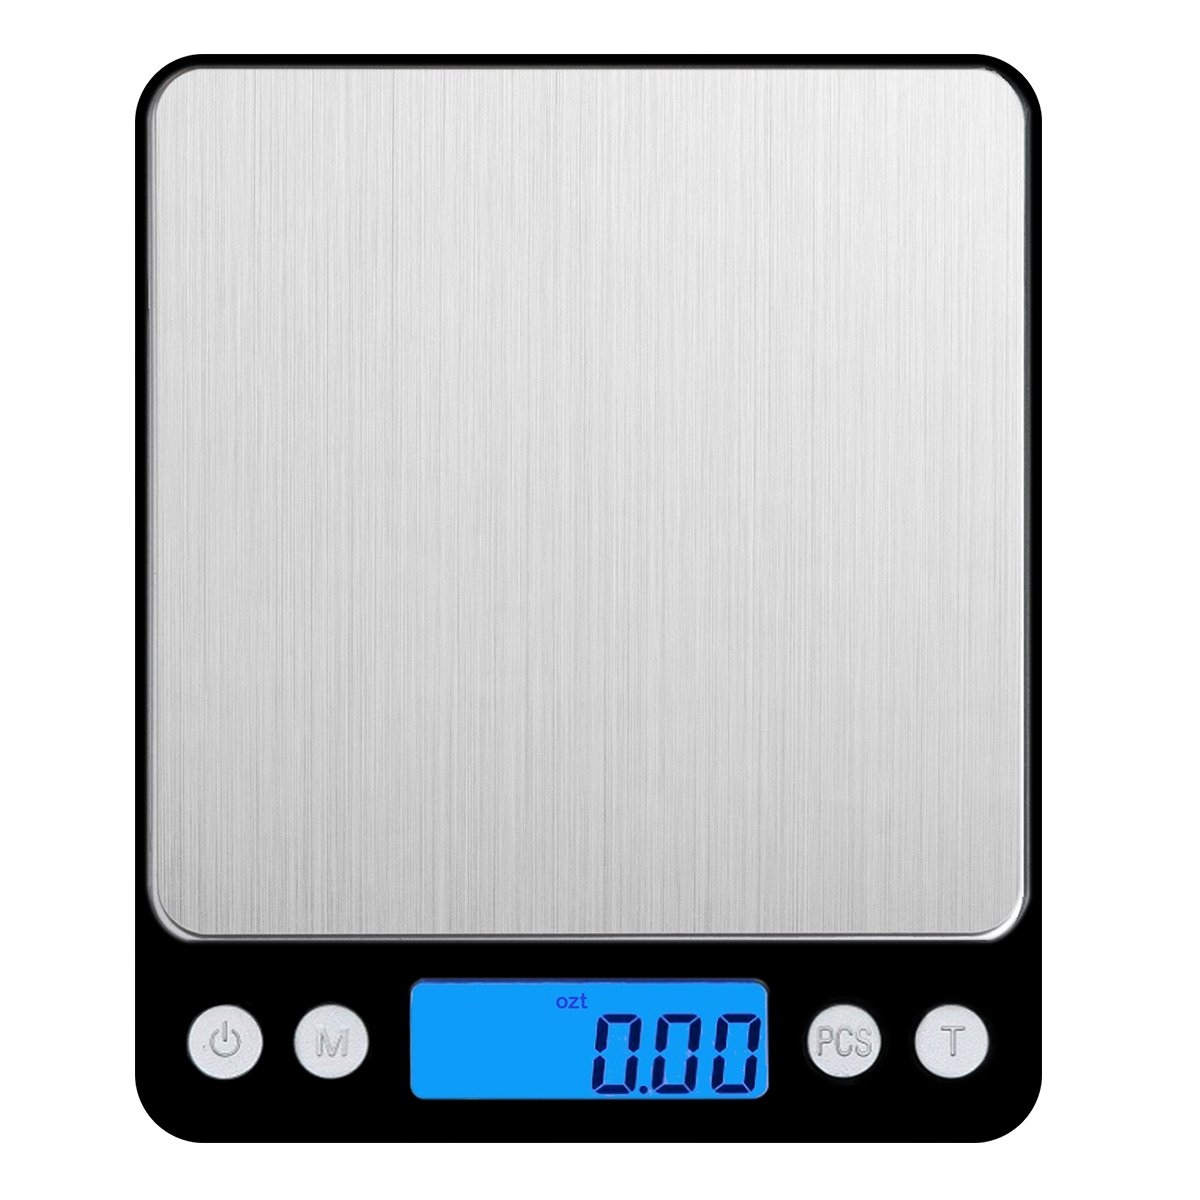 Criacr Digital Kitchen Scales, (3kg, 0.1g) Mini Food Scales, Electric Jewelry Pocket Scales, Black AMIR